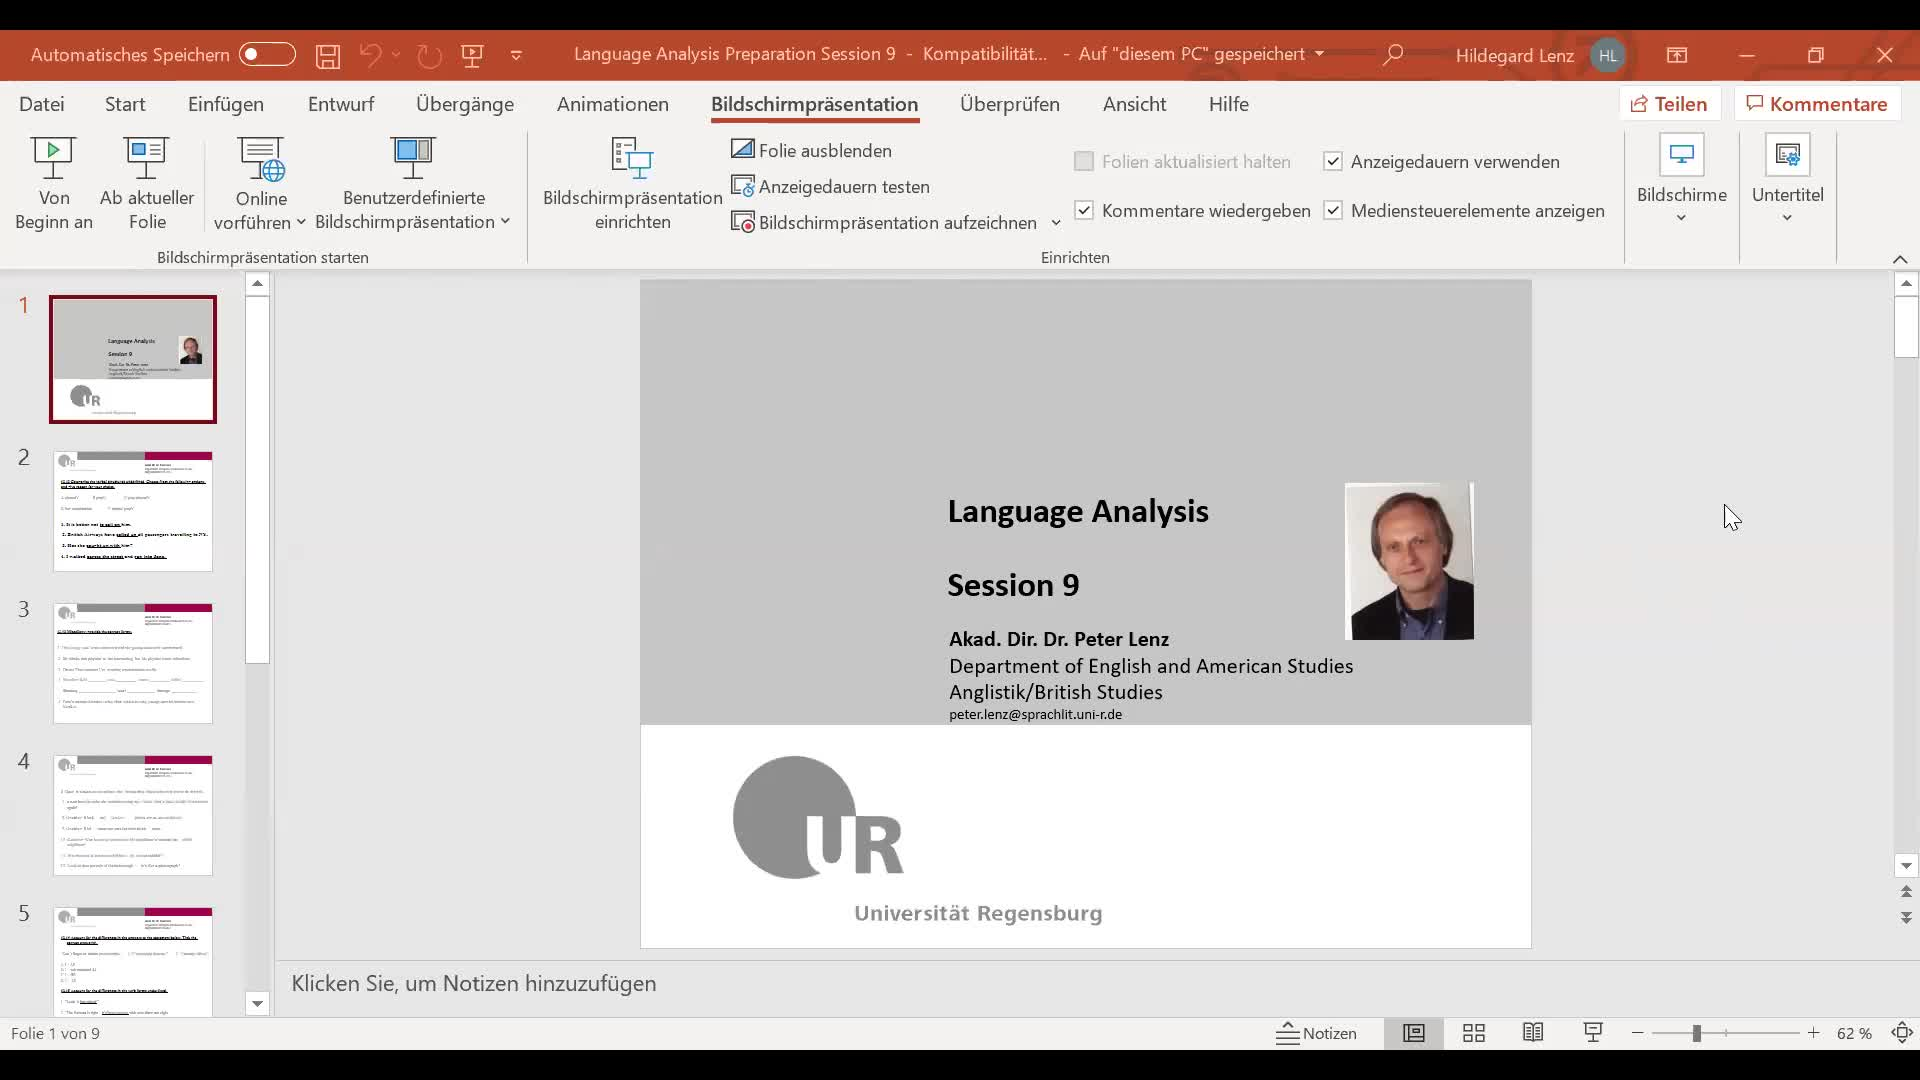 Language Analysis Session 9 Video